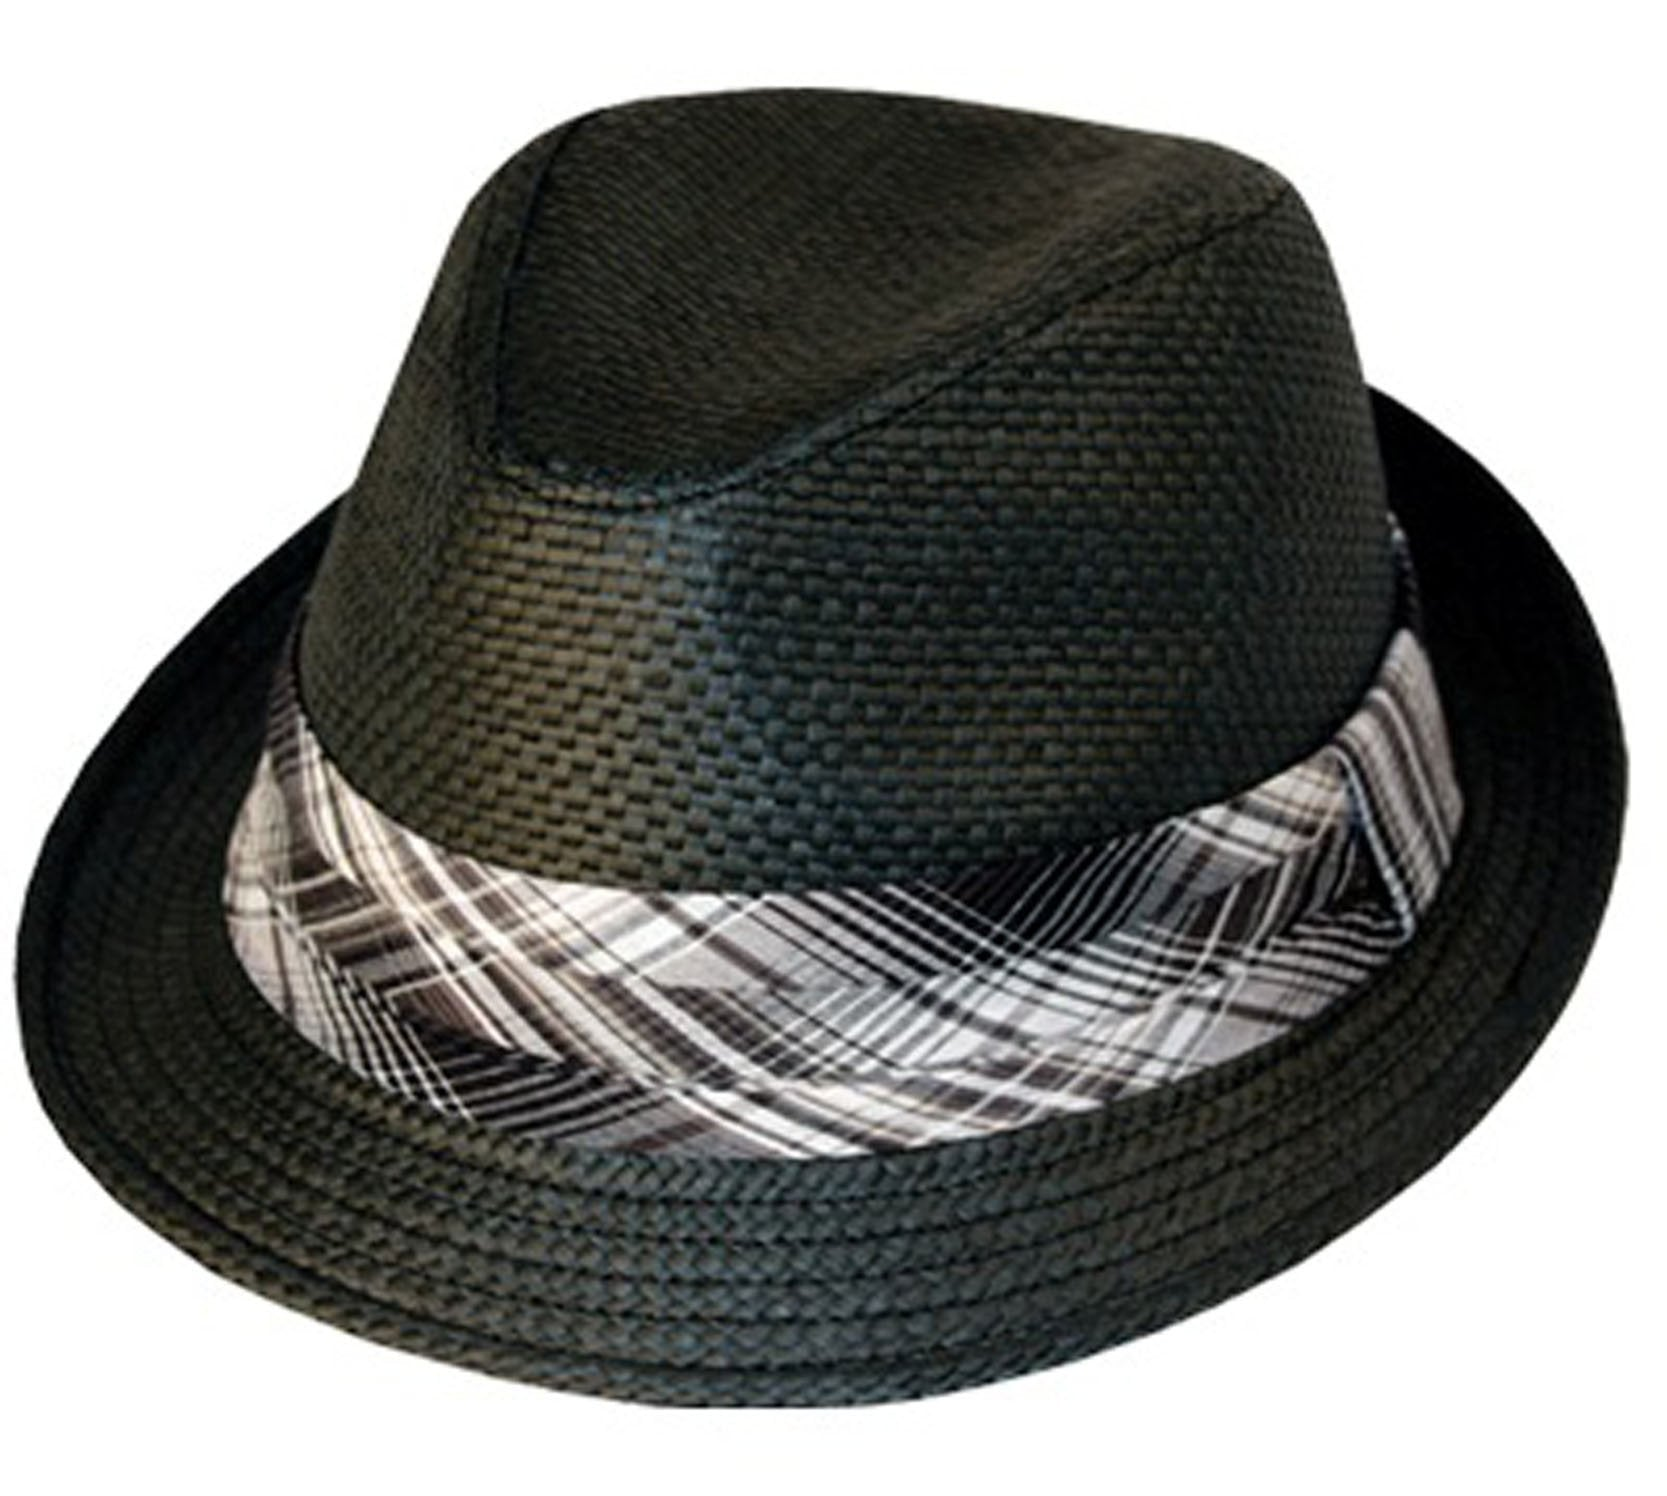 43f56e1a73475 Mens Structured 100% Paper Straw Matching Plaid Band Fedora Hat ...